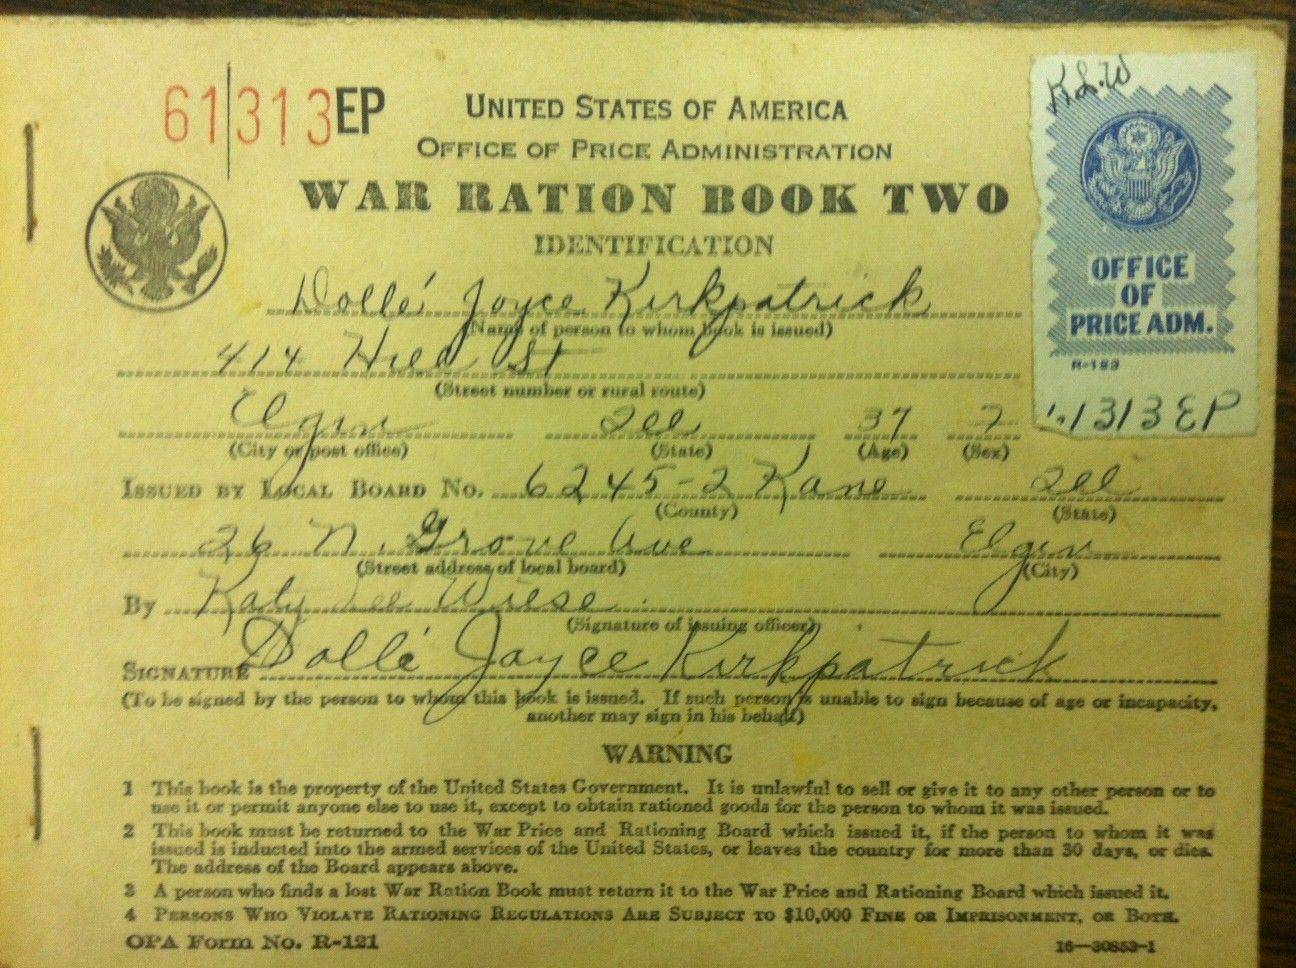 Citizens were issued ration books to purchase certain commodities that were limited during World War II.